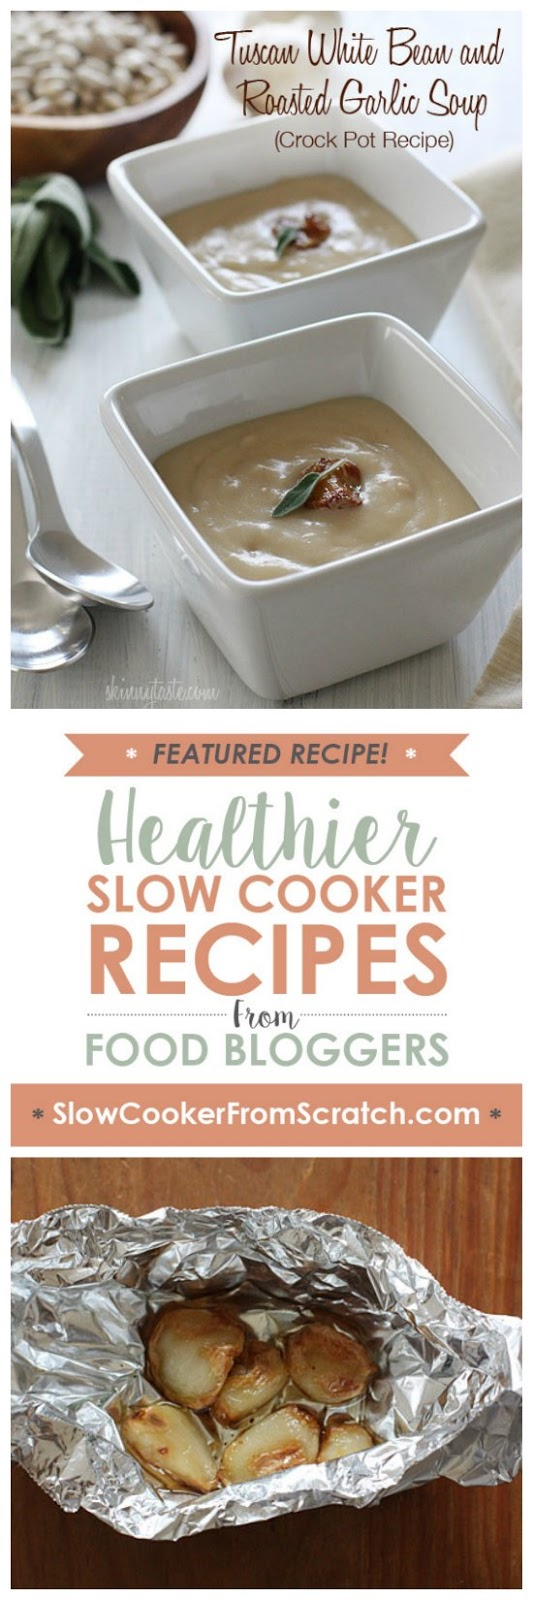 Slow Cooker Tuscan White Bean and Roasted Garlic Soup from Skinnytaste featured on SlowCookerFromScratch.com